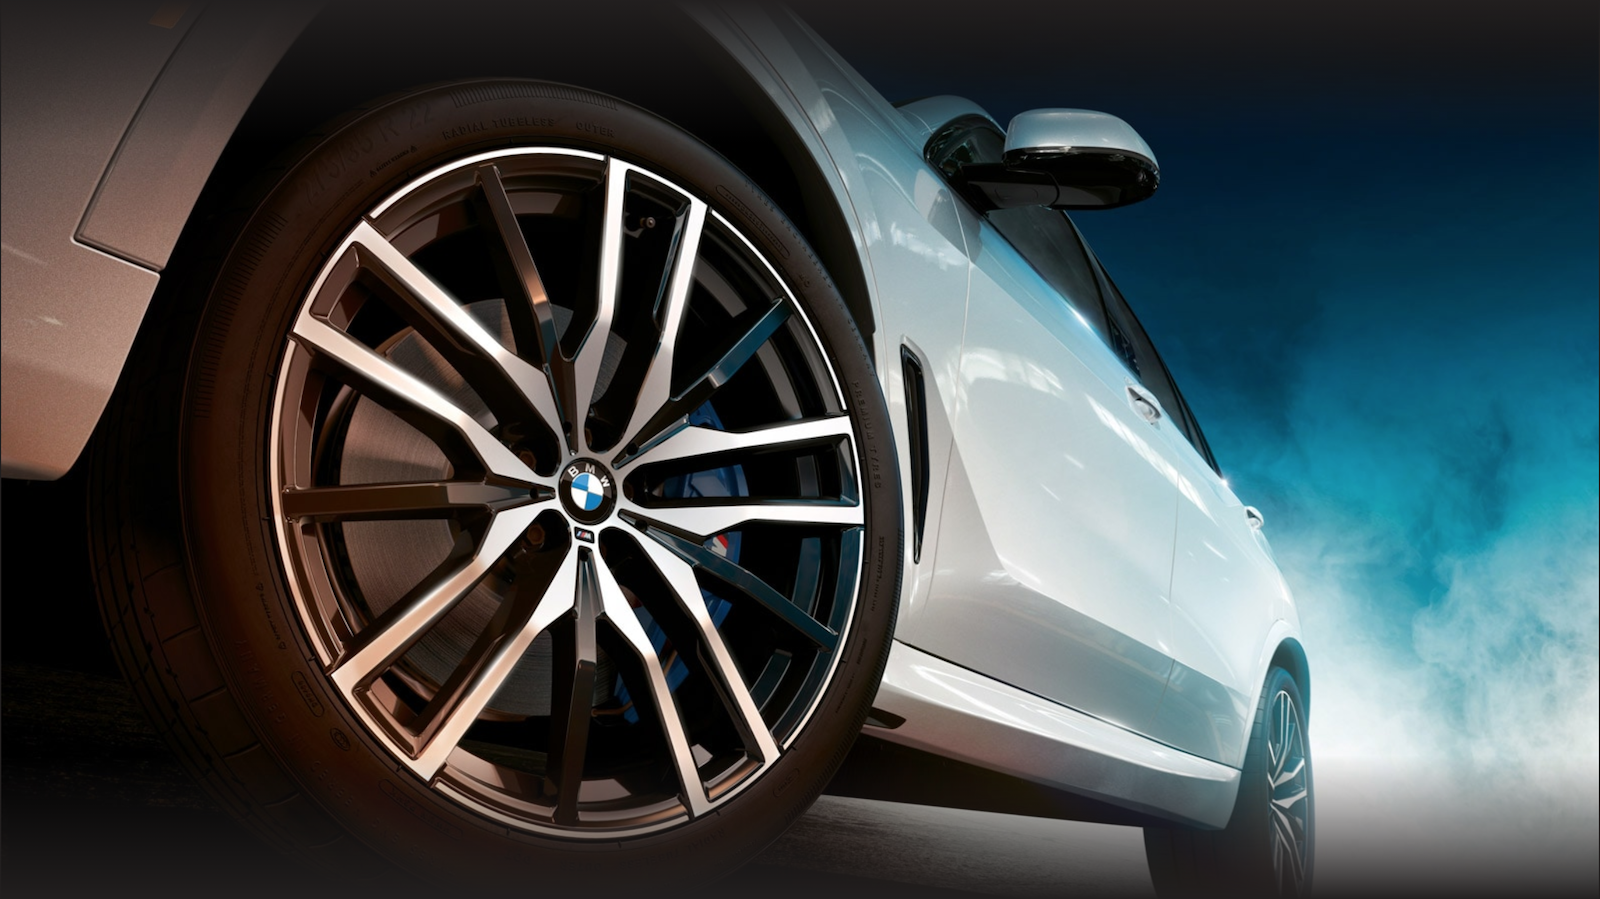 Take these 2021 X5 wheels for a test drive at Team Sewell BMW.